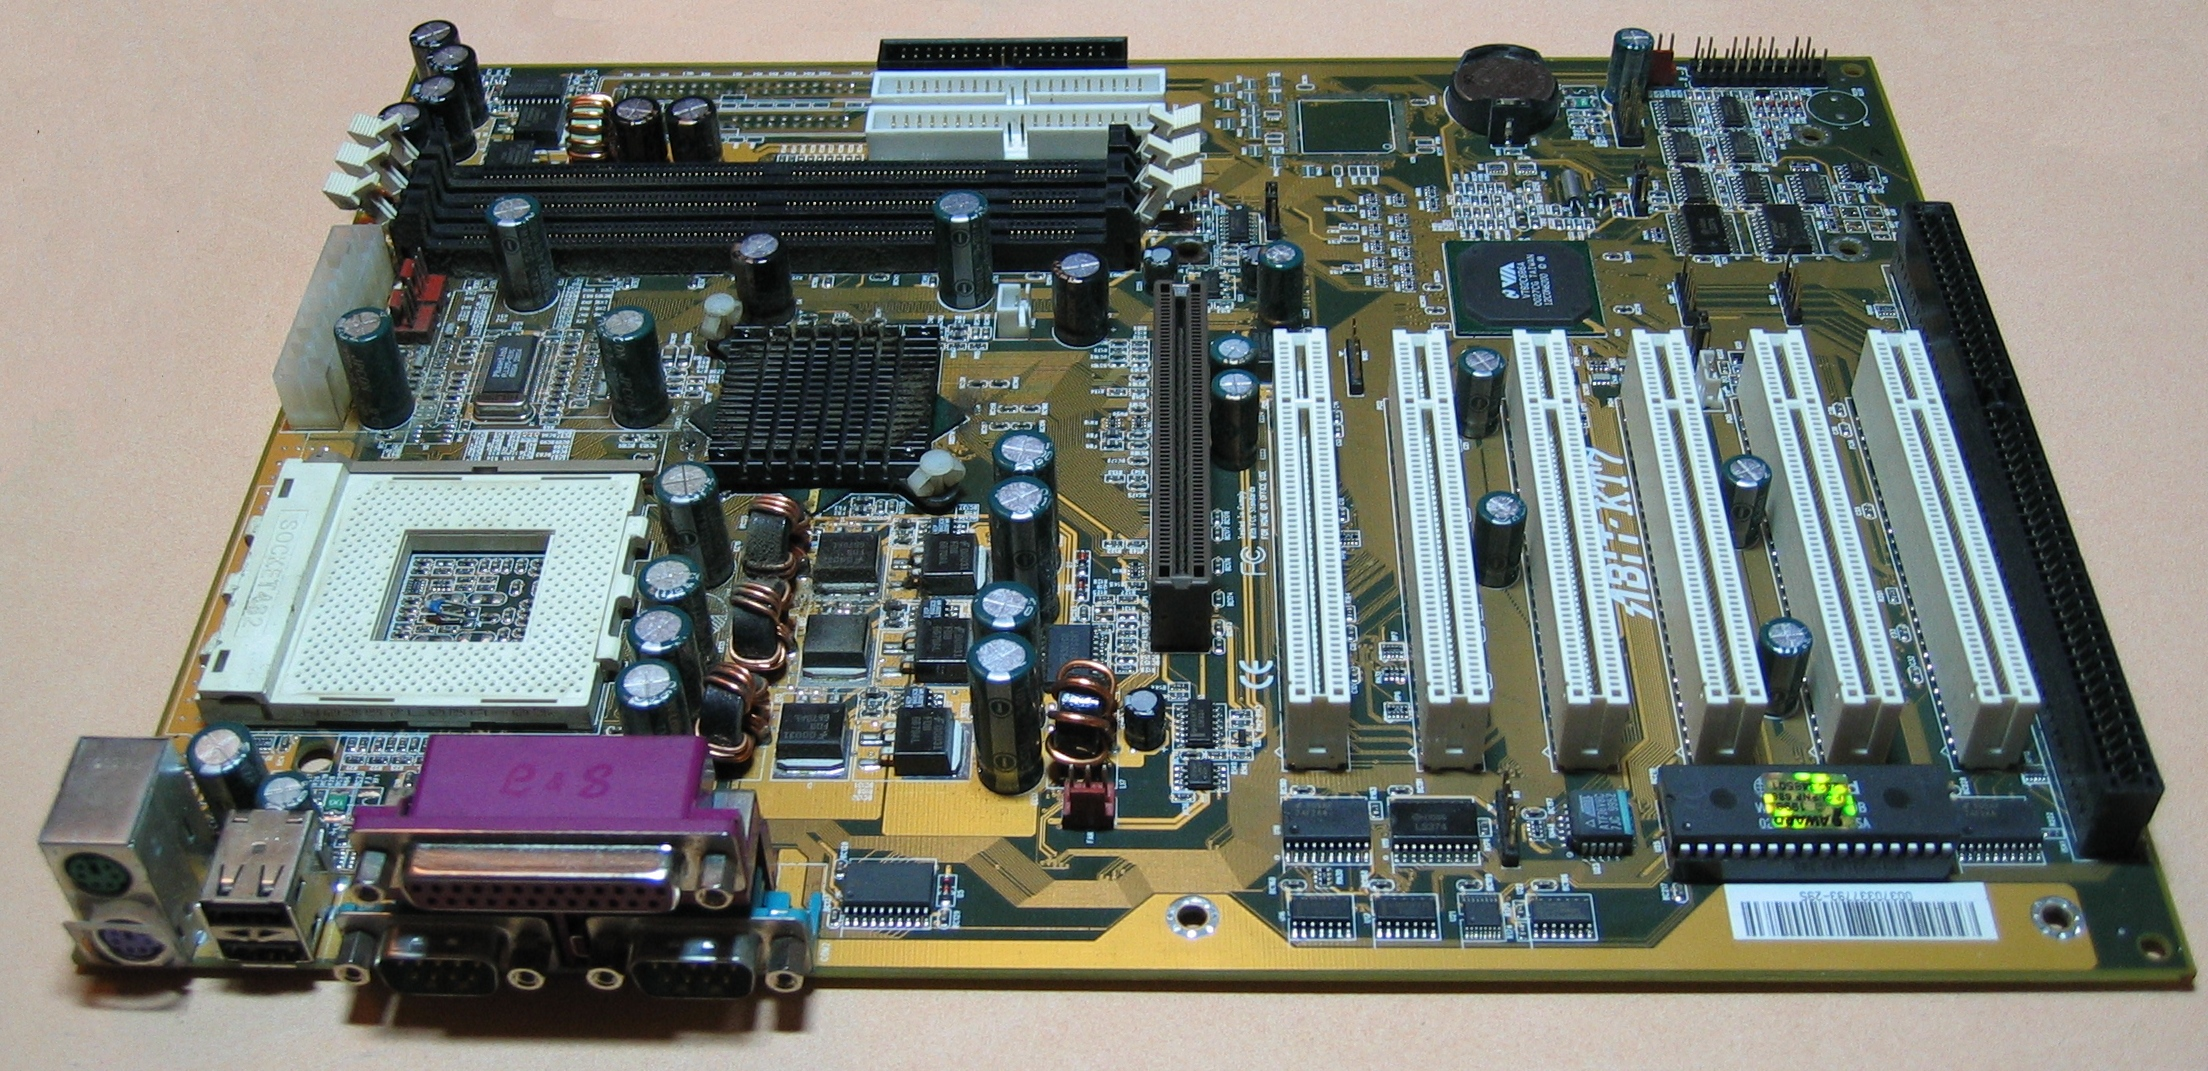 Atx Wikipedia Asus Motherboard Wiring Diagram